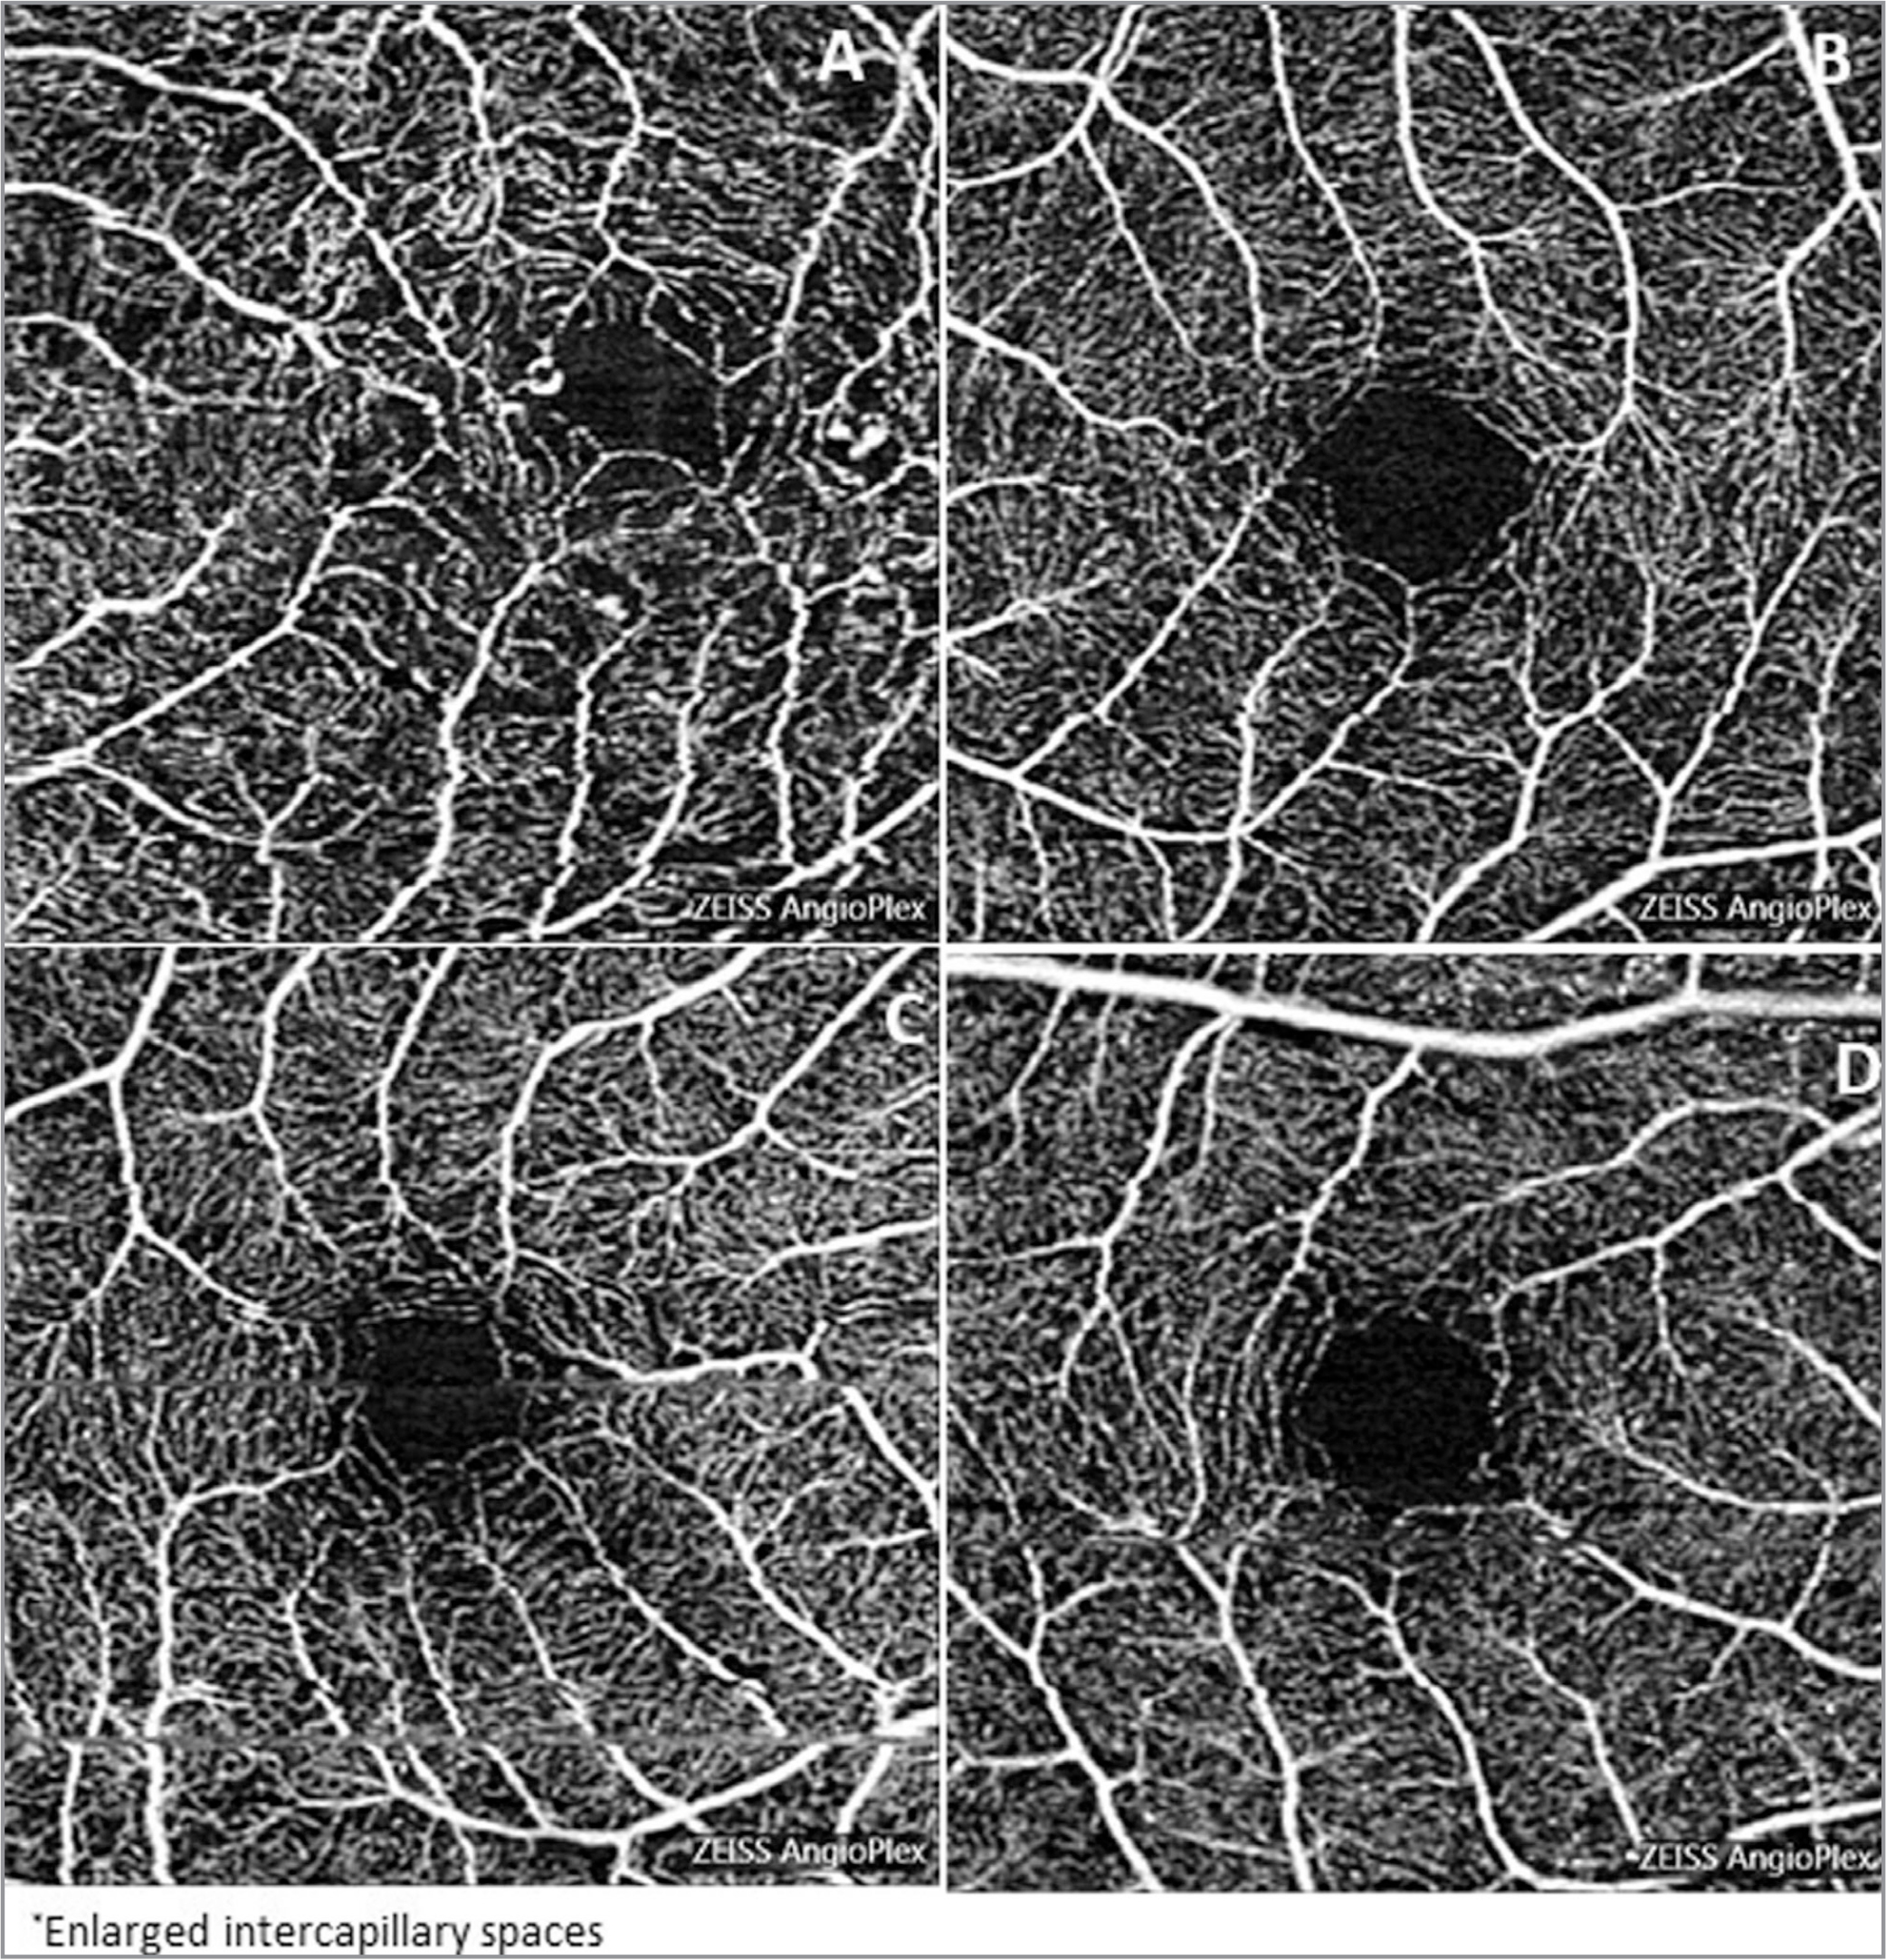 Qualitative changes affecting the superficial capillary plexus in radiation-exposed eyes were evident, including microaneurysms (A), punched-out borders (B), enlarged intercapillary spaces (EICA) (C), and capillary loops (D).